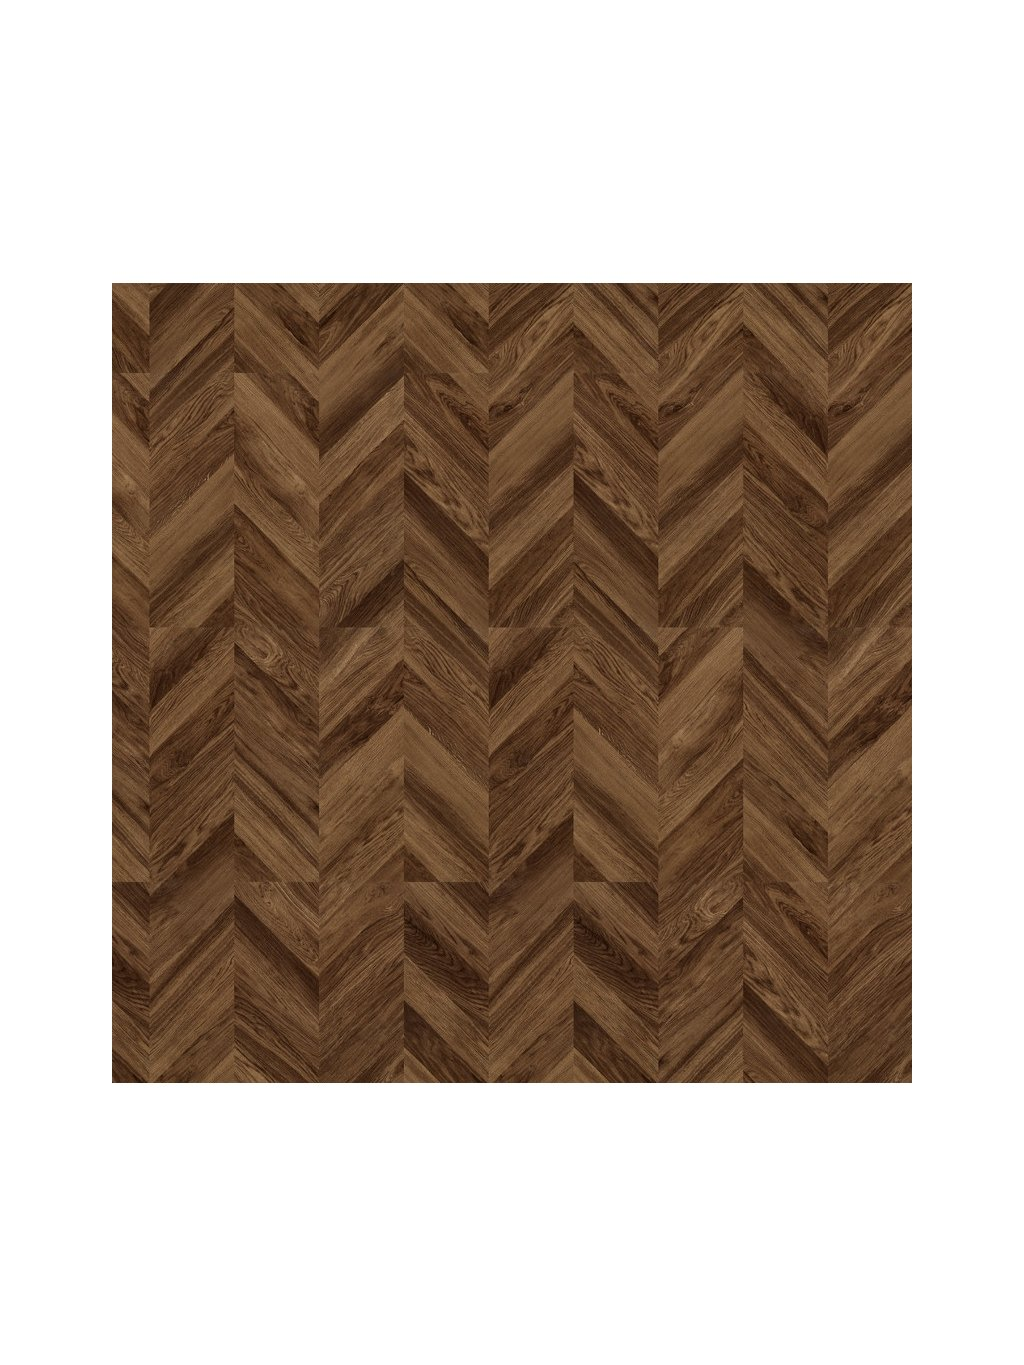 Expona Commercial 4112 Tanned Chevron Parquet